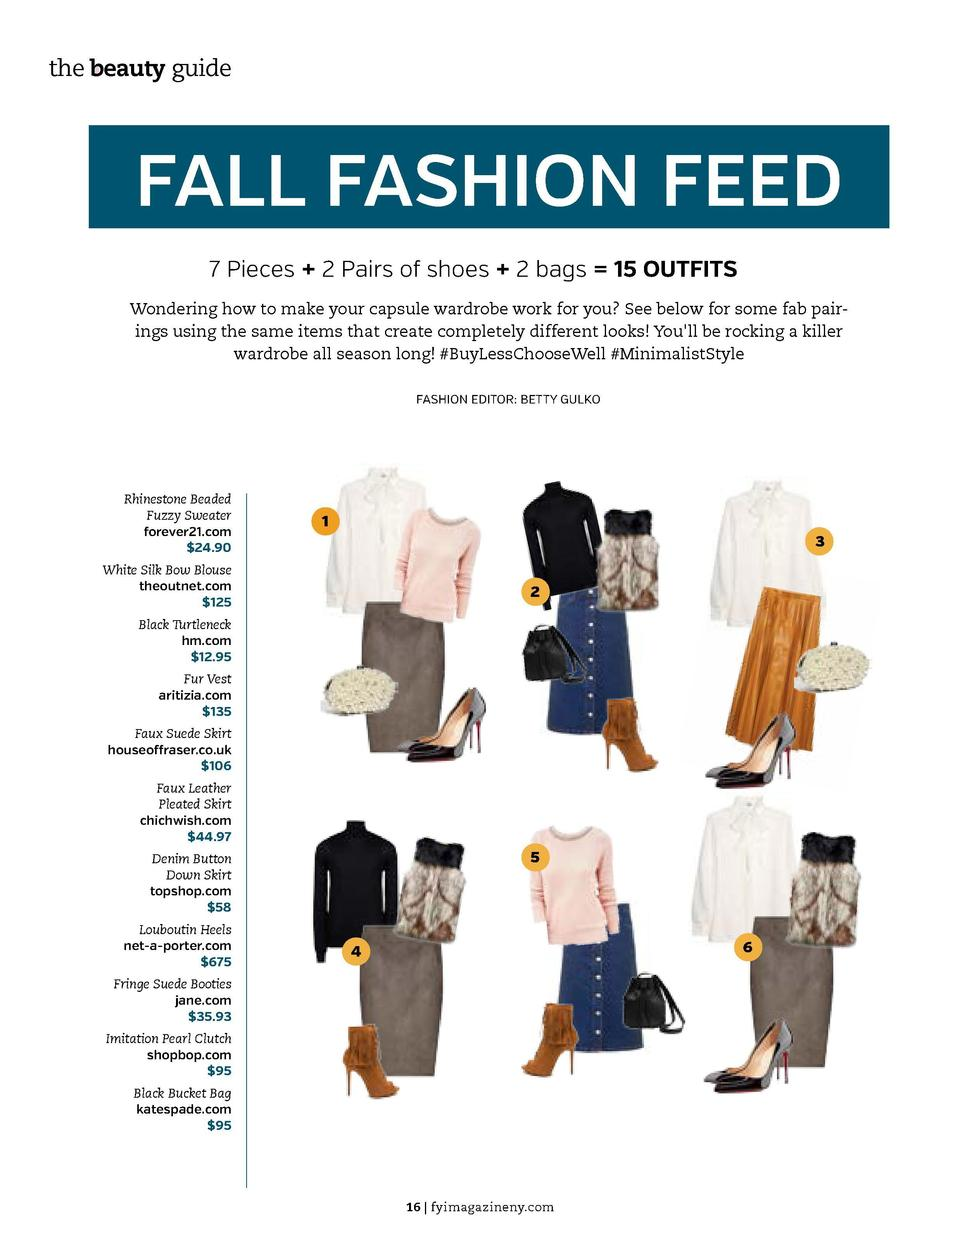 the beauty guide  FASHION  FALL FASHION FEED 7 Pieces   2 Pairs of shoes   2 bags   15 OUTFITS  8 7  Wondering how to make...